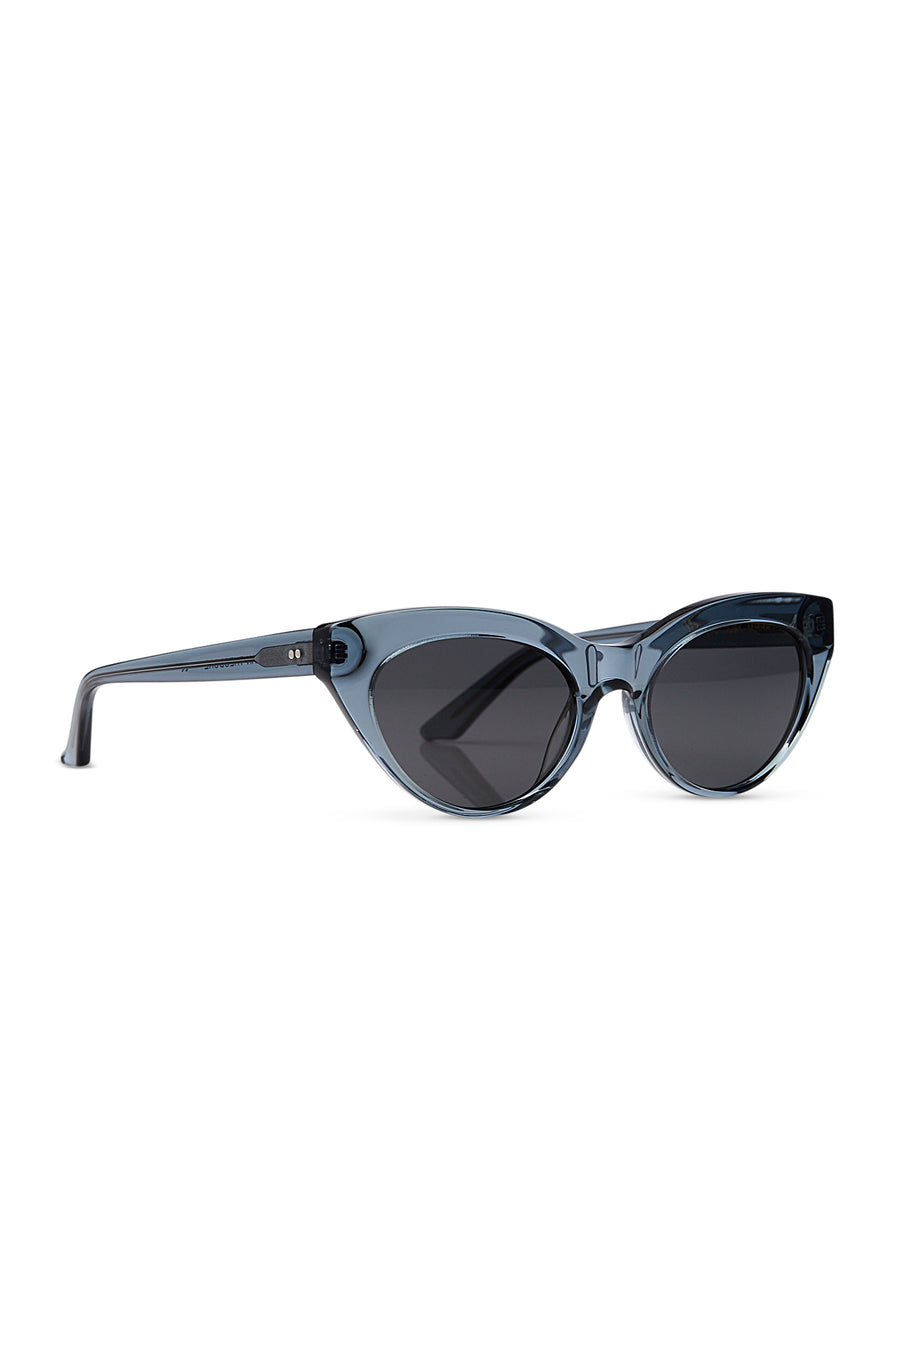 ST MIRRA SUNGLASSES DUSK, DUSK color